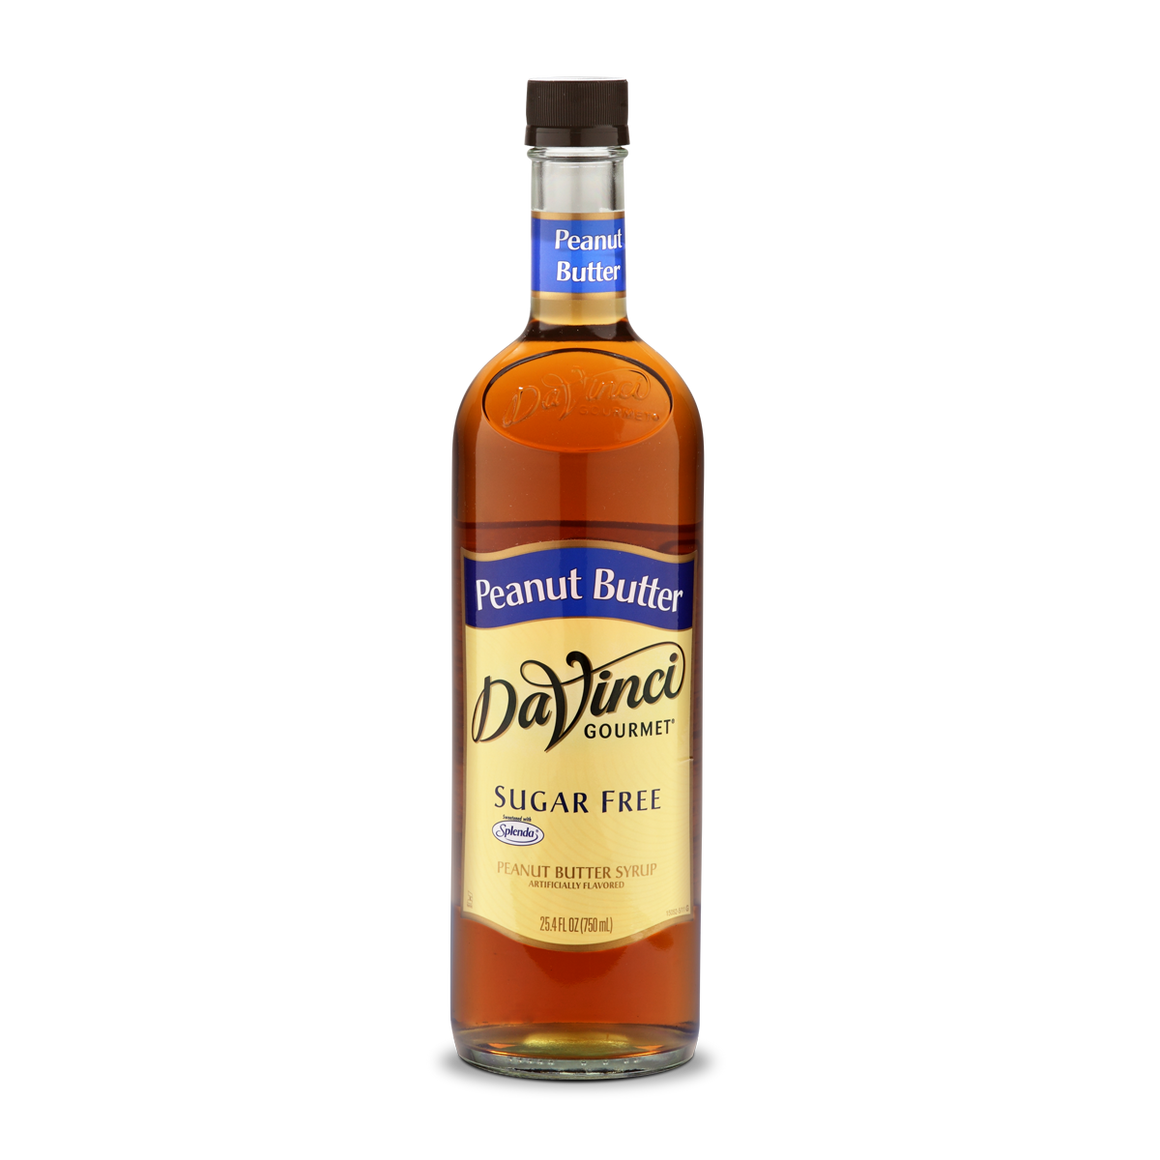 DaVinci - Sugar Free Syrup - Peanut Butter - 25.4 fl oz Bottle